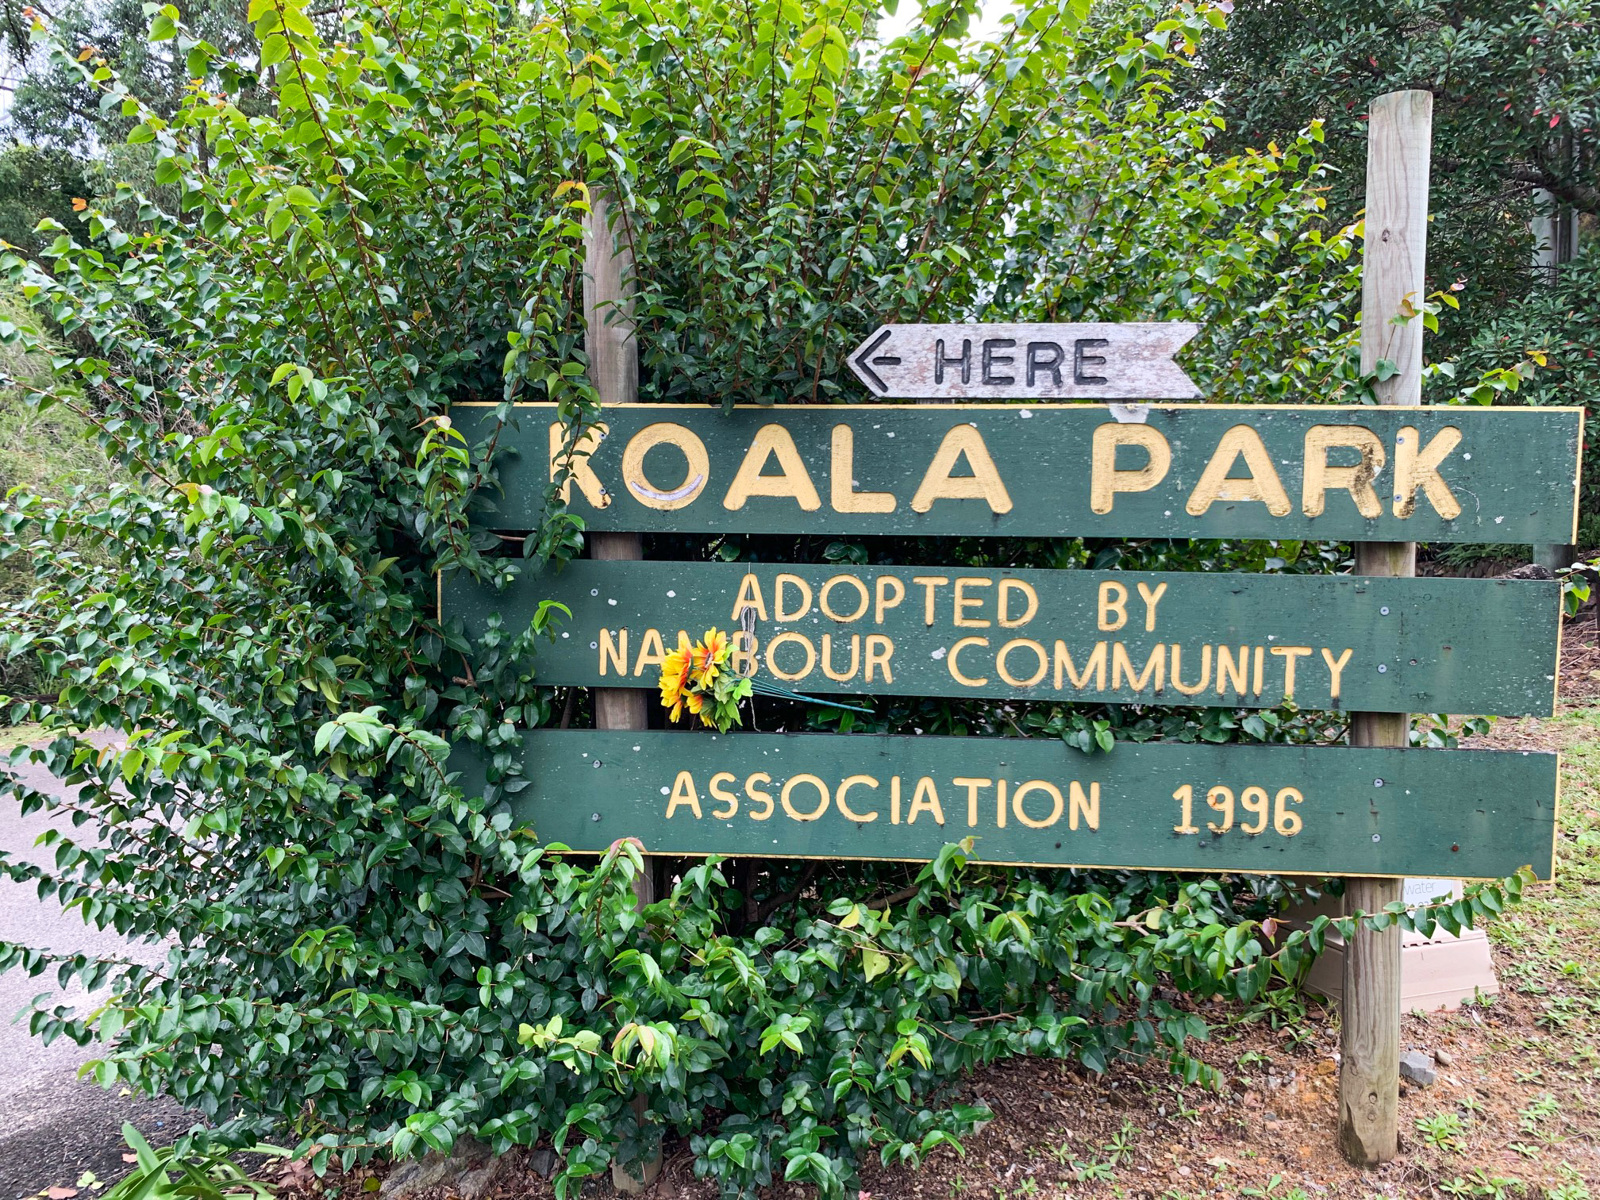 Trail Image for Koala Park Recreation Loop